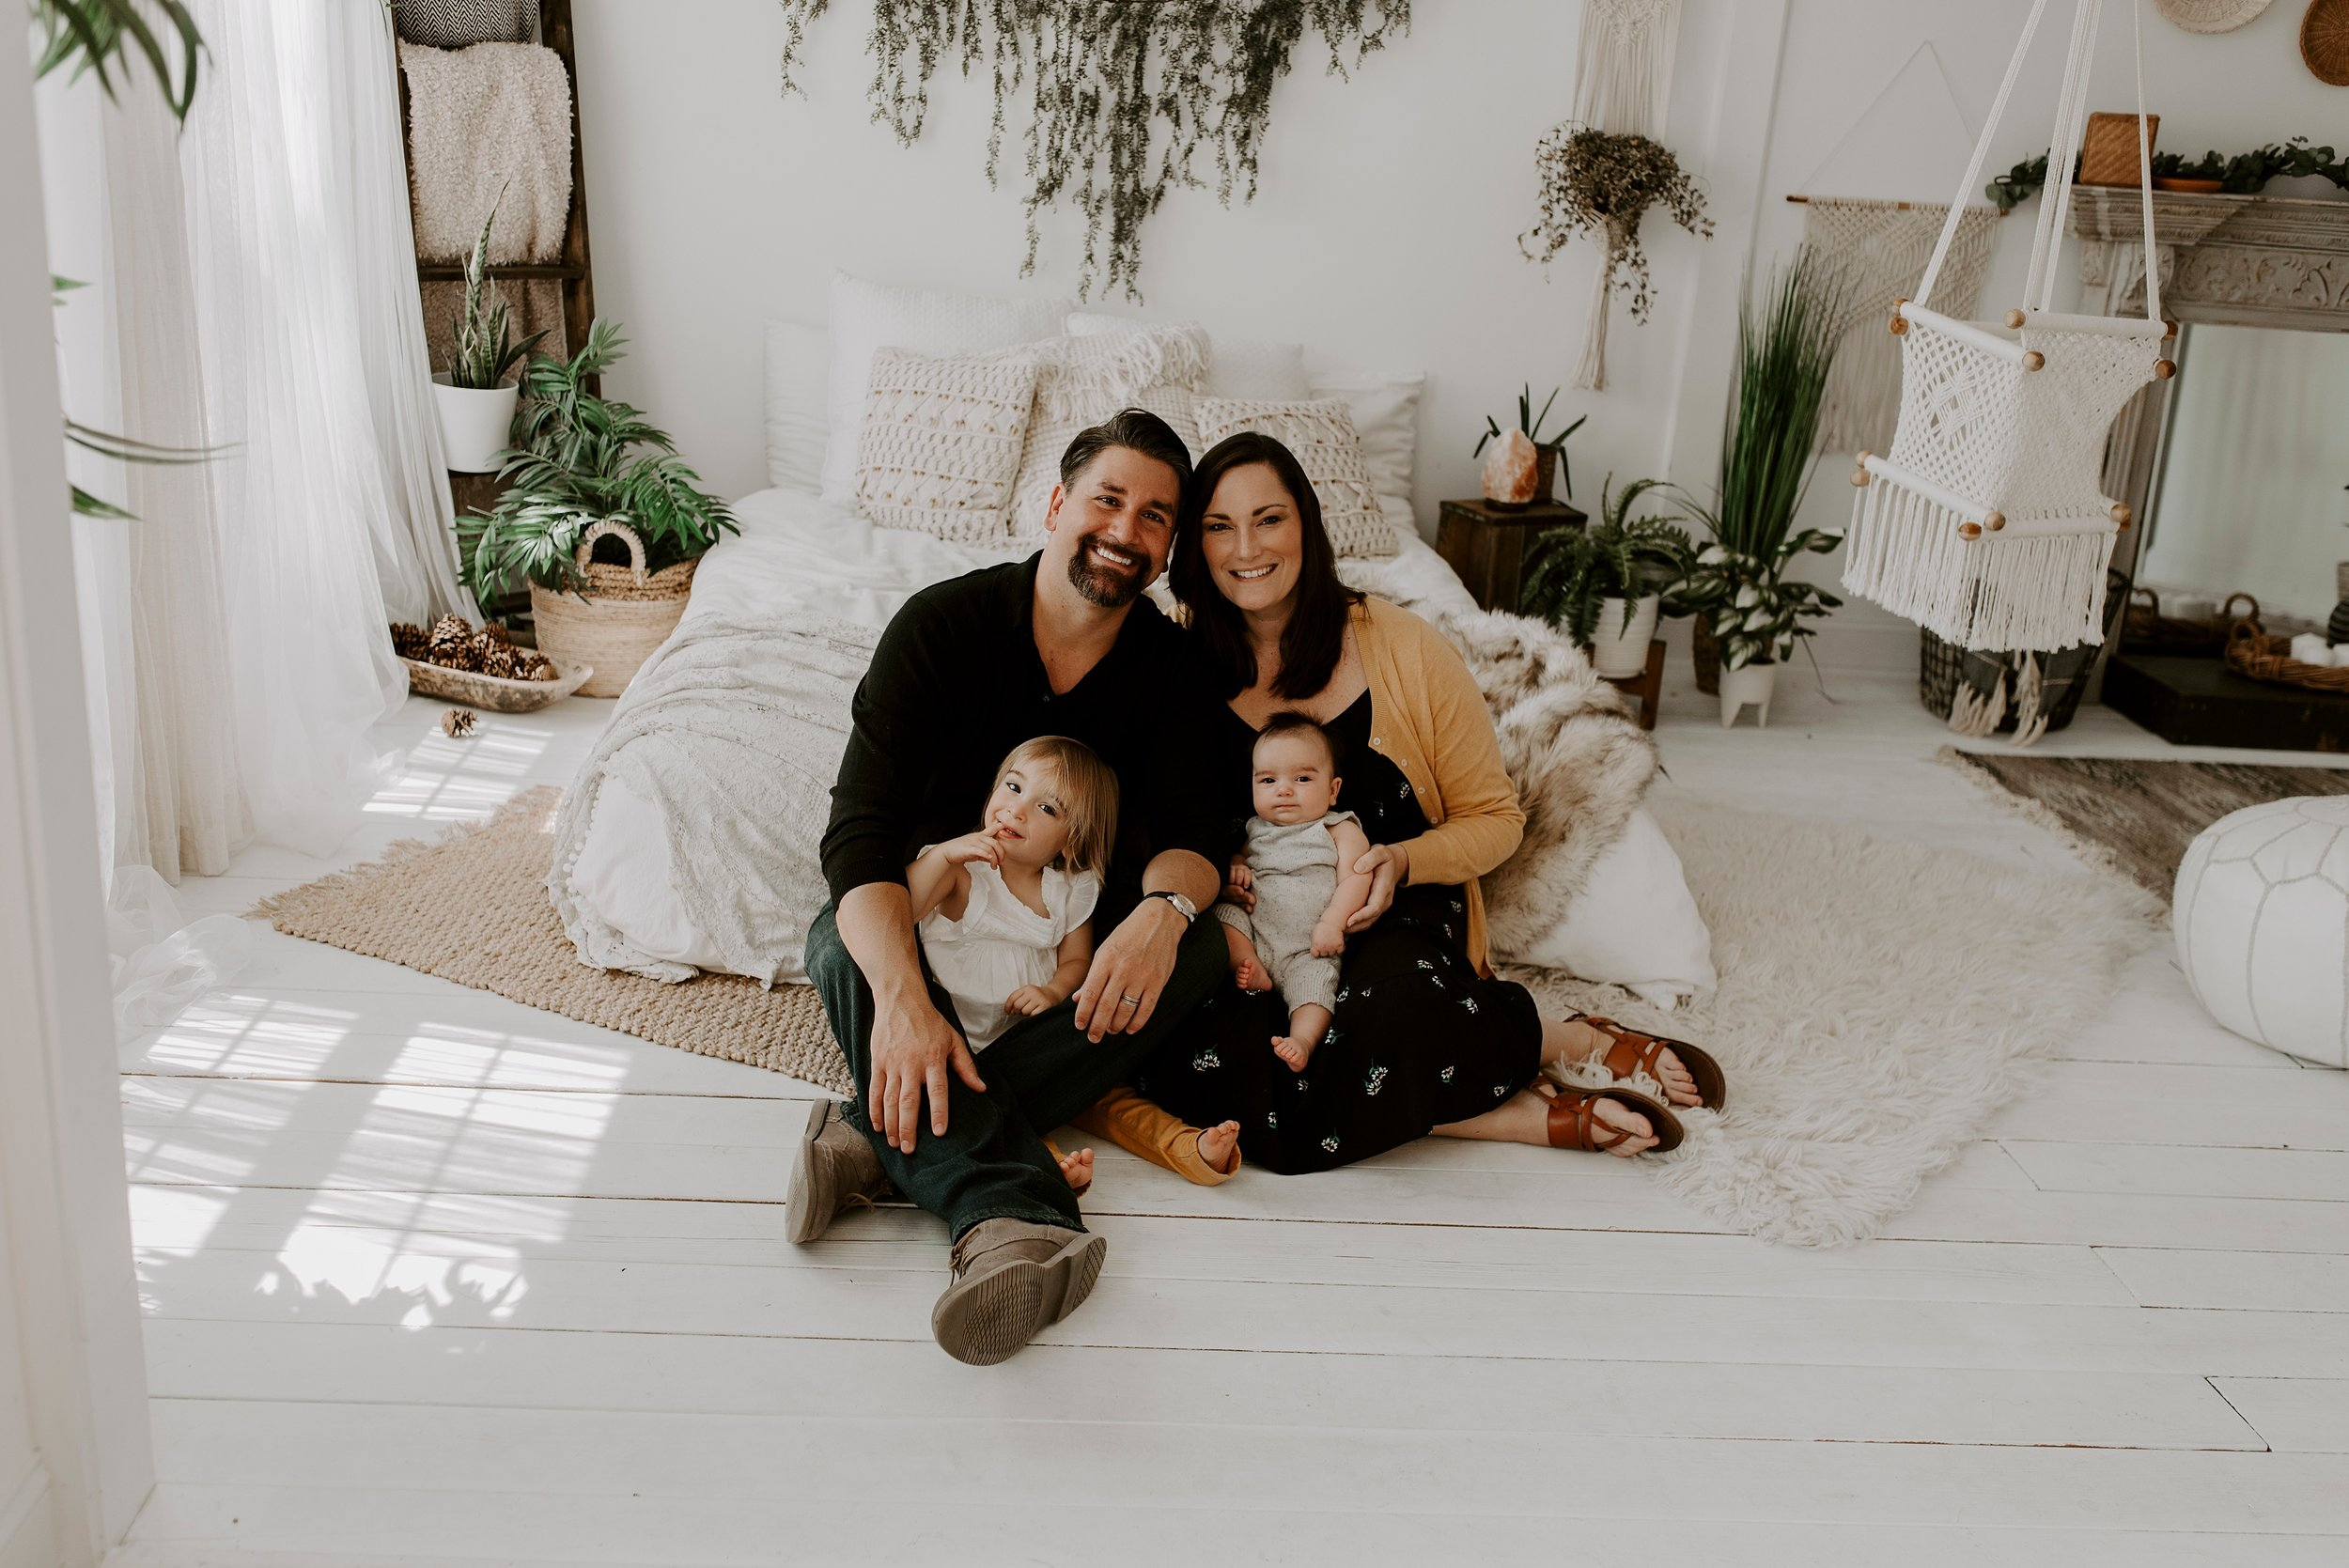 studio family photo ideas